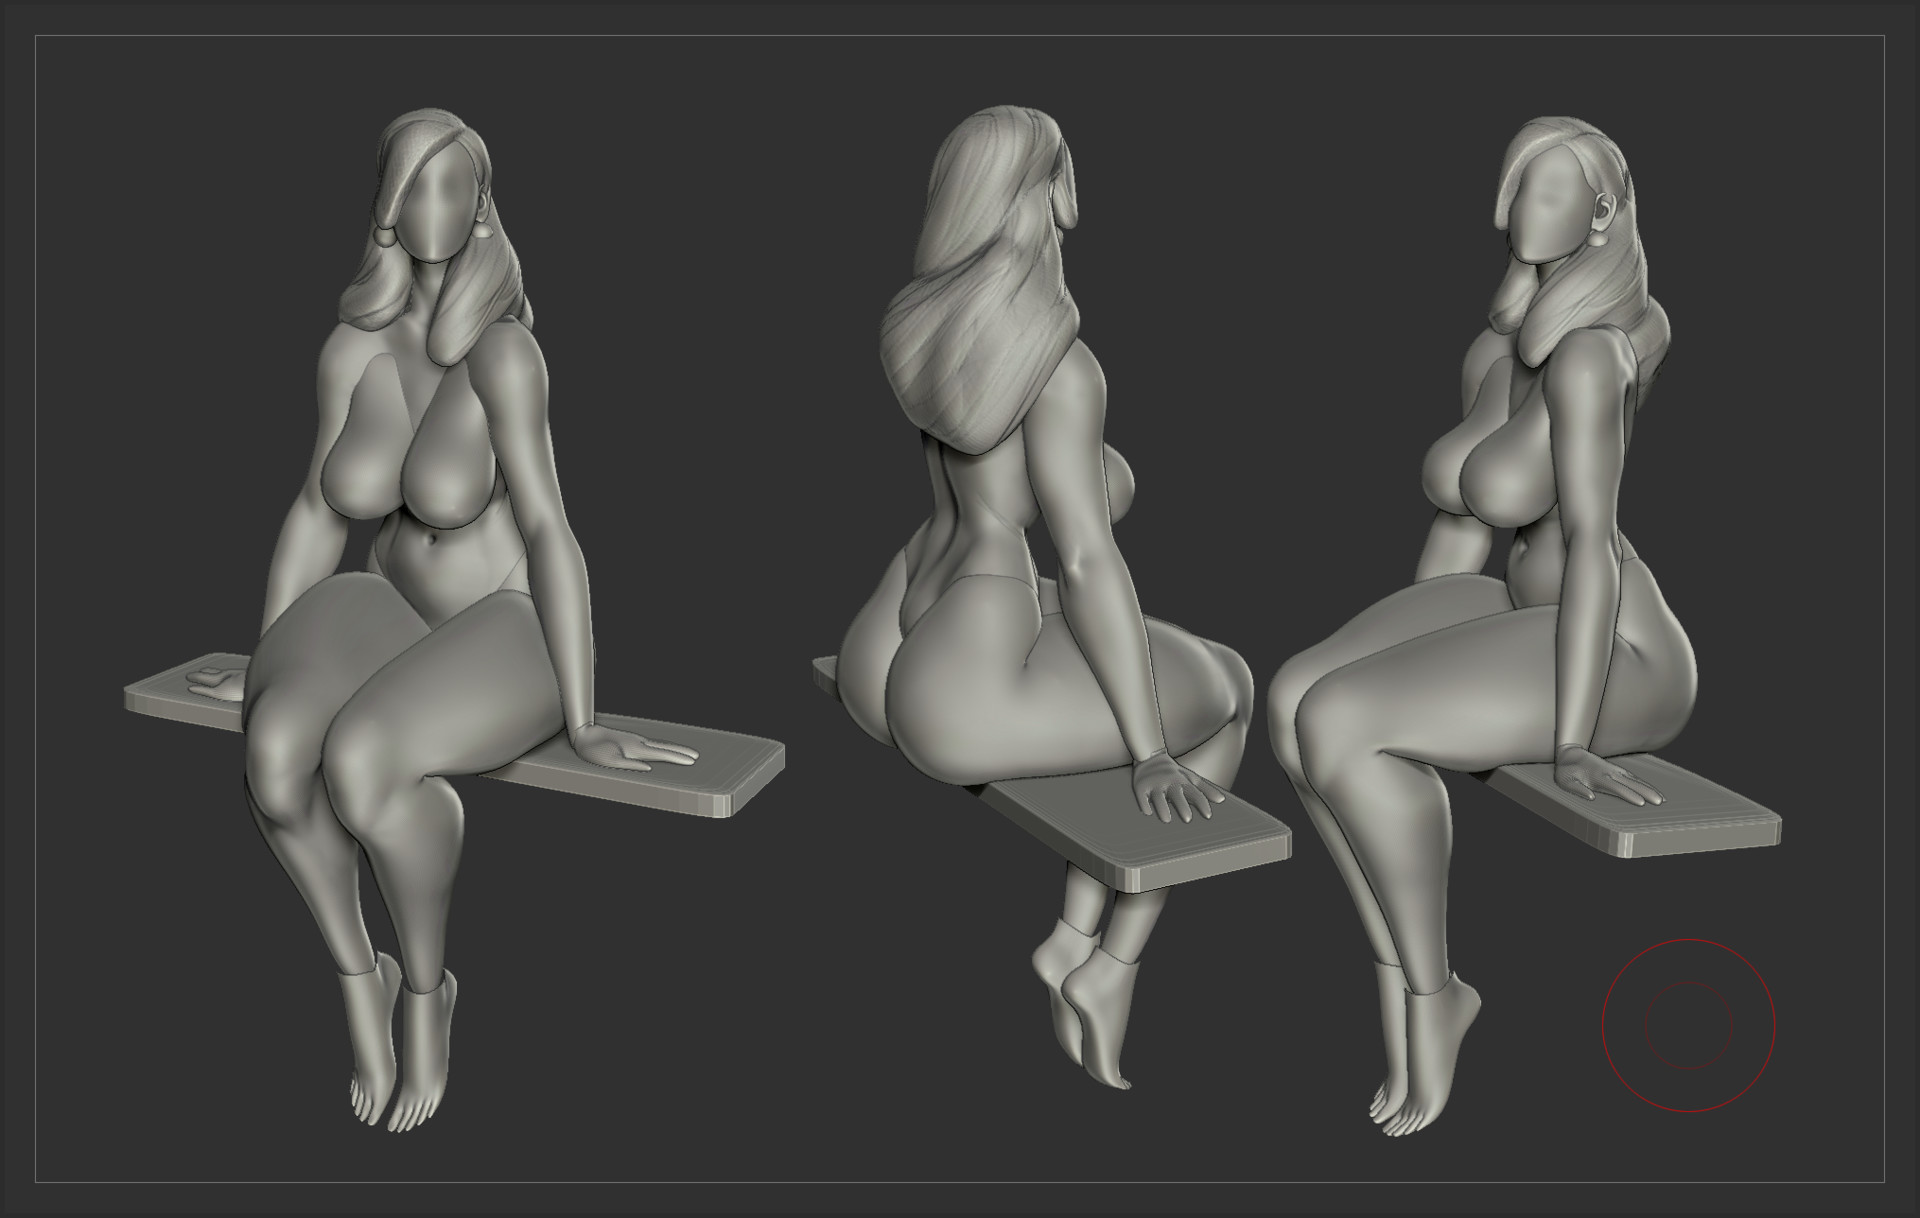 Mercurial forge mercurial forge zbrush 2018 05 22 01 51 32